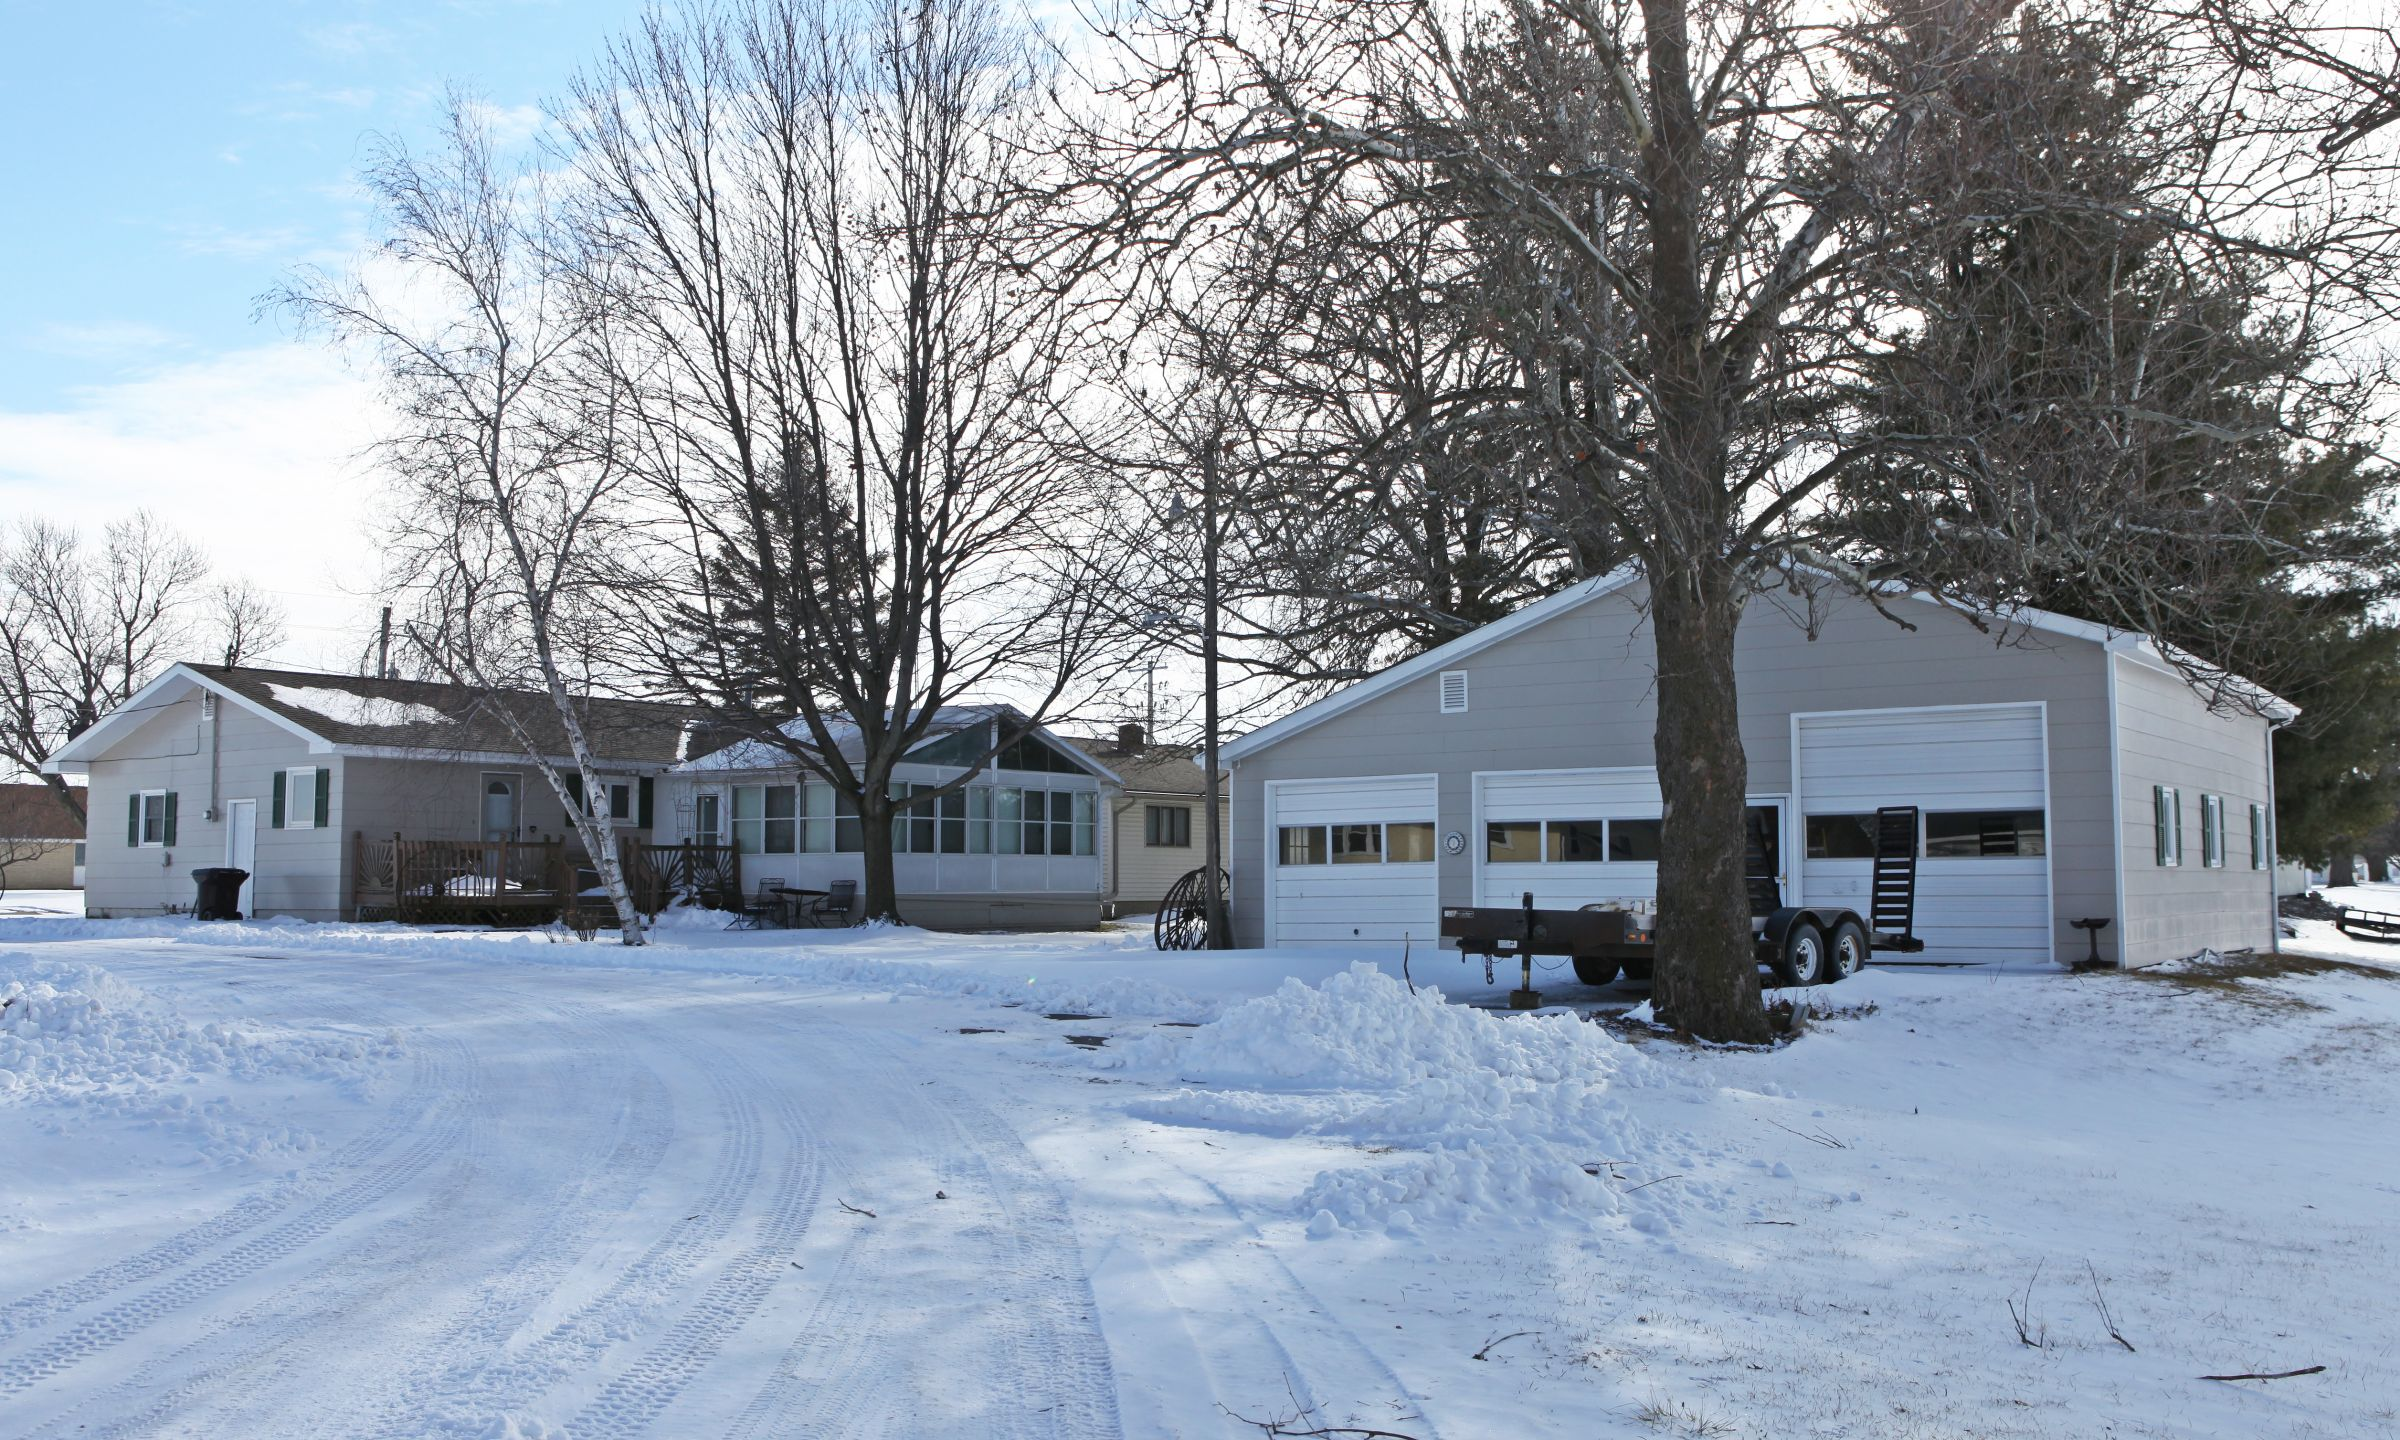 residential-lucas-county-iowa-0-acres-listing-number-15321-0-2021-01-18-210421.jpg